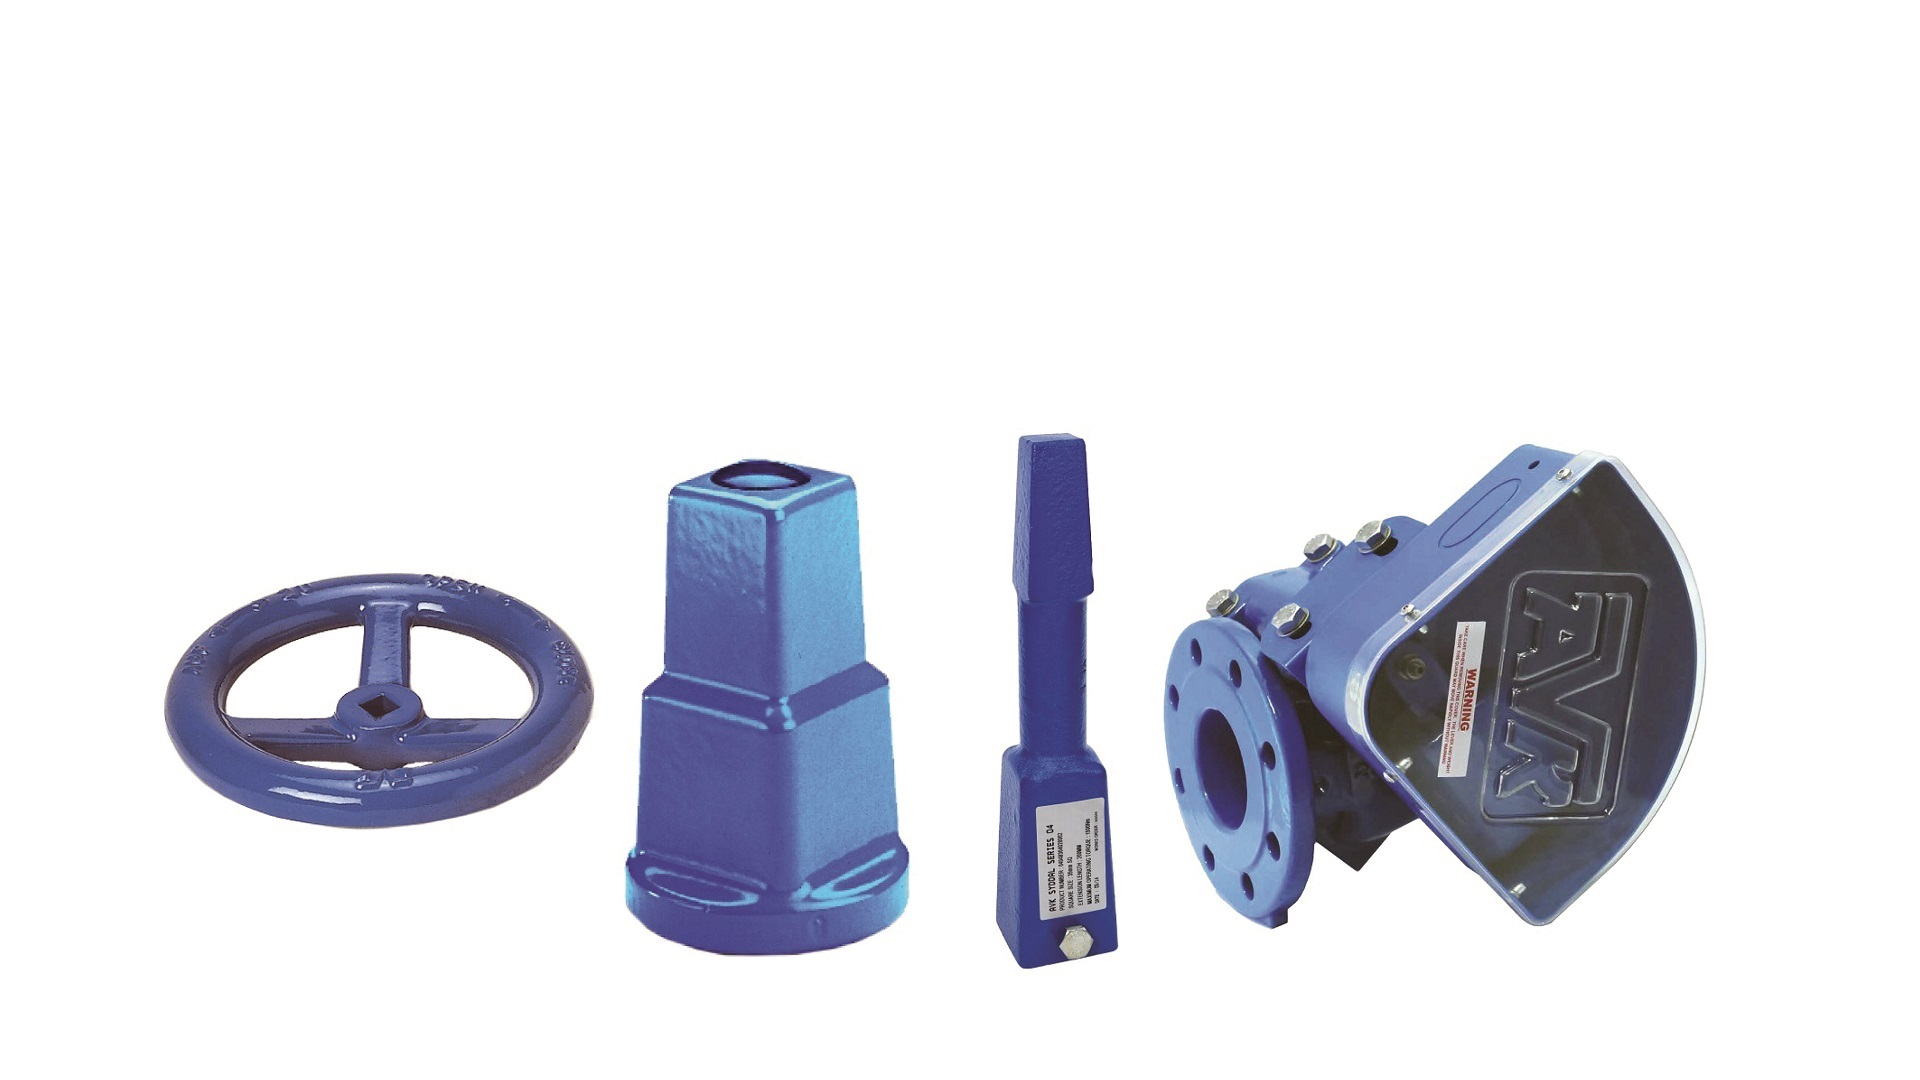 AVK Water Product accessories